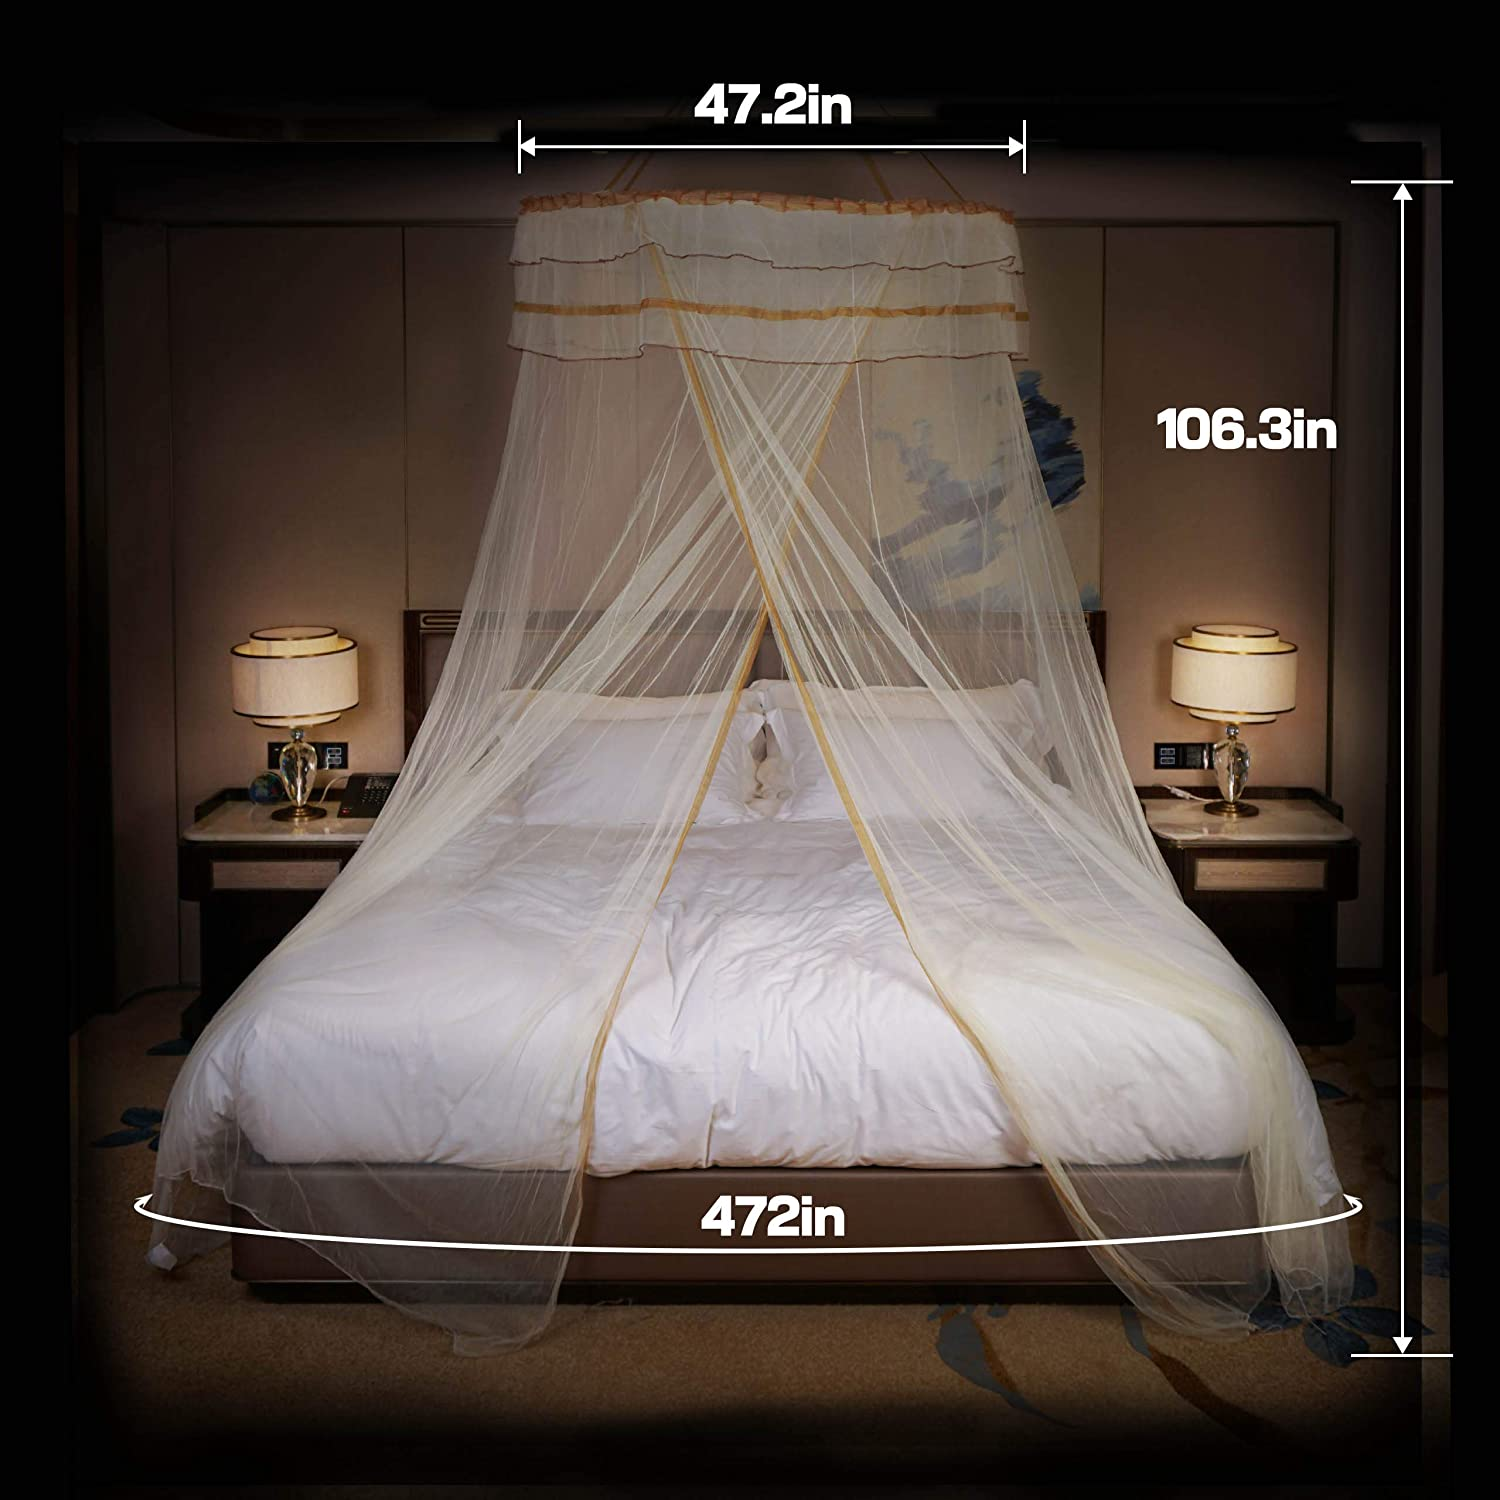 Dimples Excle Ltd Apricot DIMPLES EXCEL Mosquito Net Bed for Double Fine Mesh Material Flexible Steel Roof of 4ft Diameter Popup with Hanging Kit